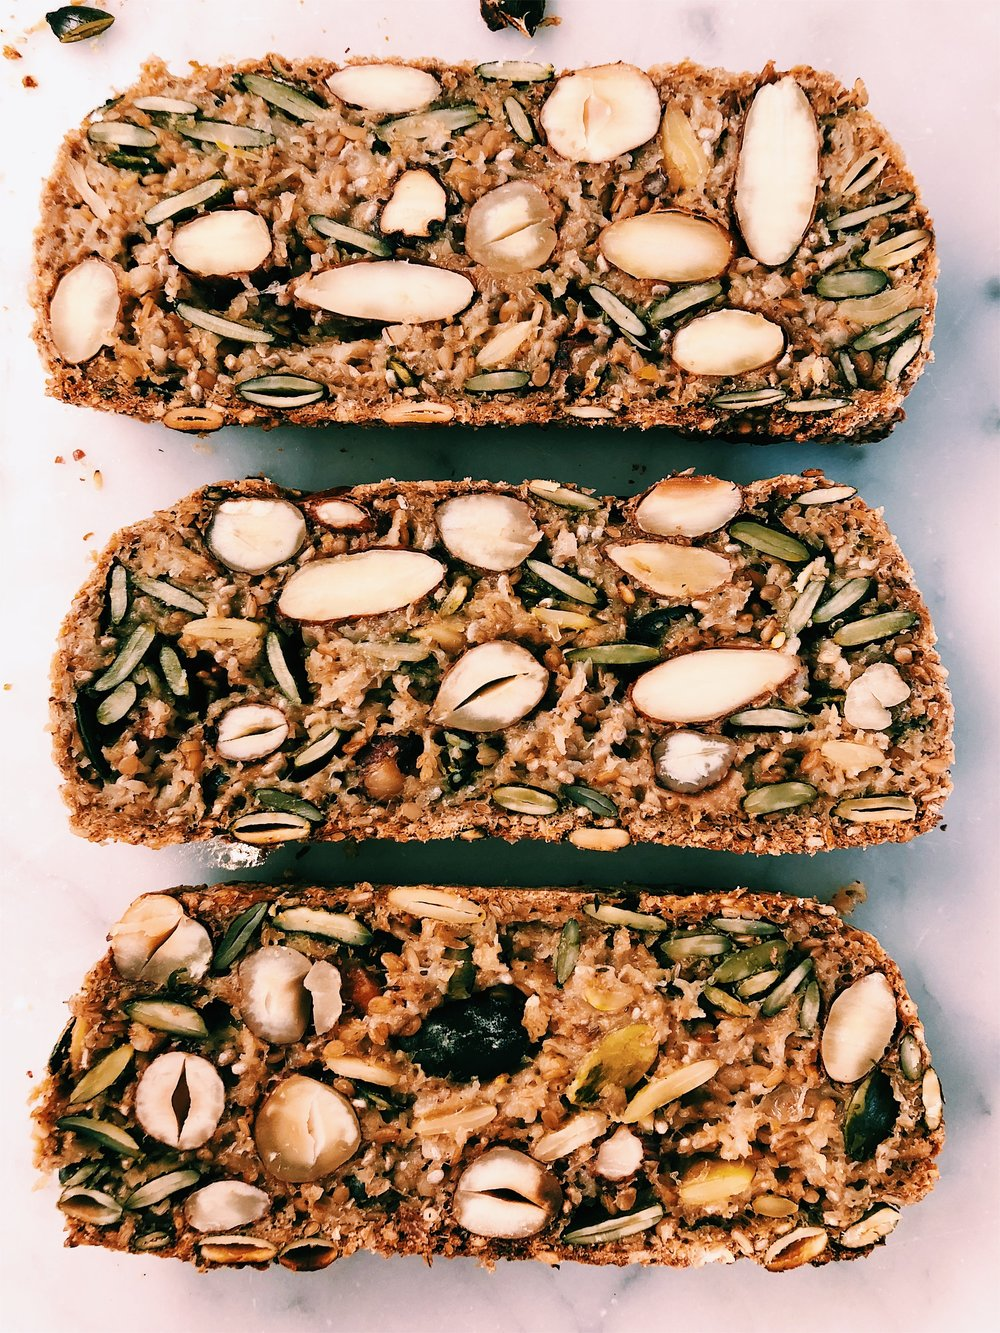 seed and nut bread.jpg